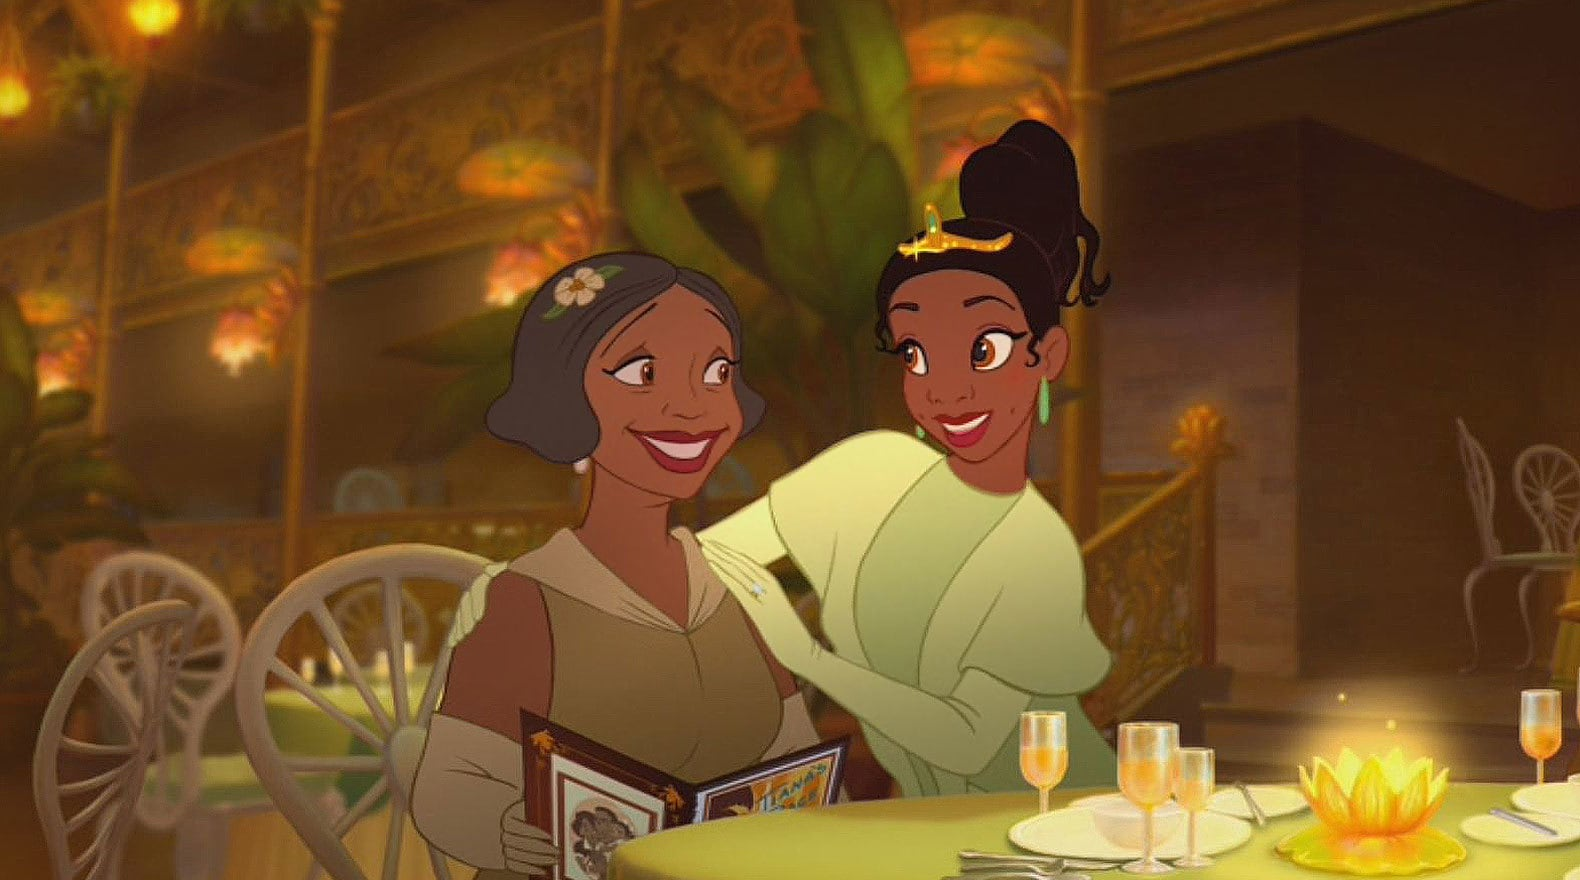 Eudora voiced by Oprah Winfrey and Tiana voiced by Anika Noni Rose at her restaurant opening